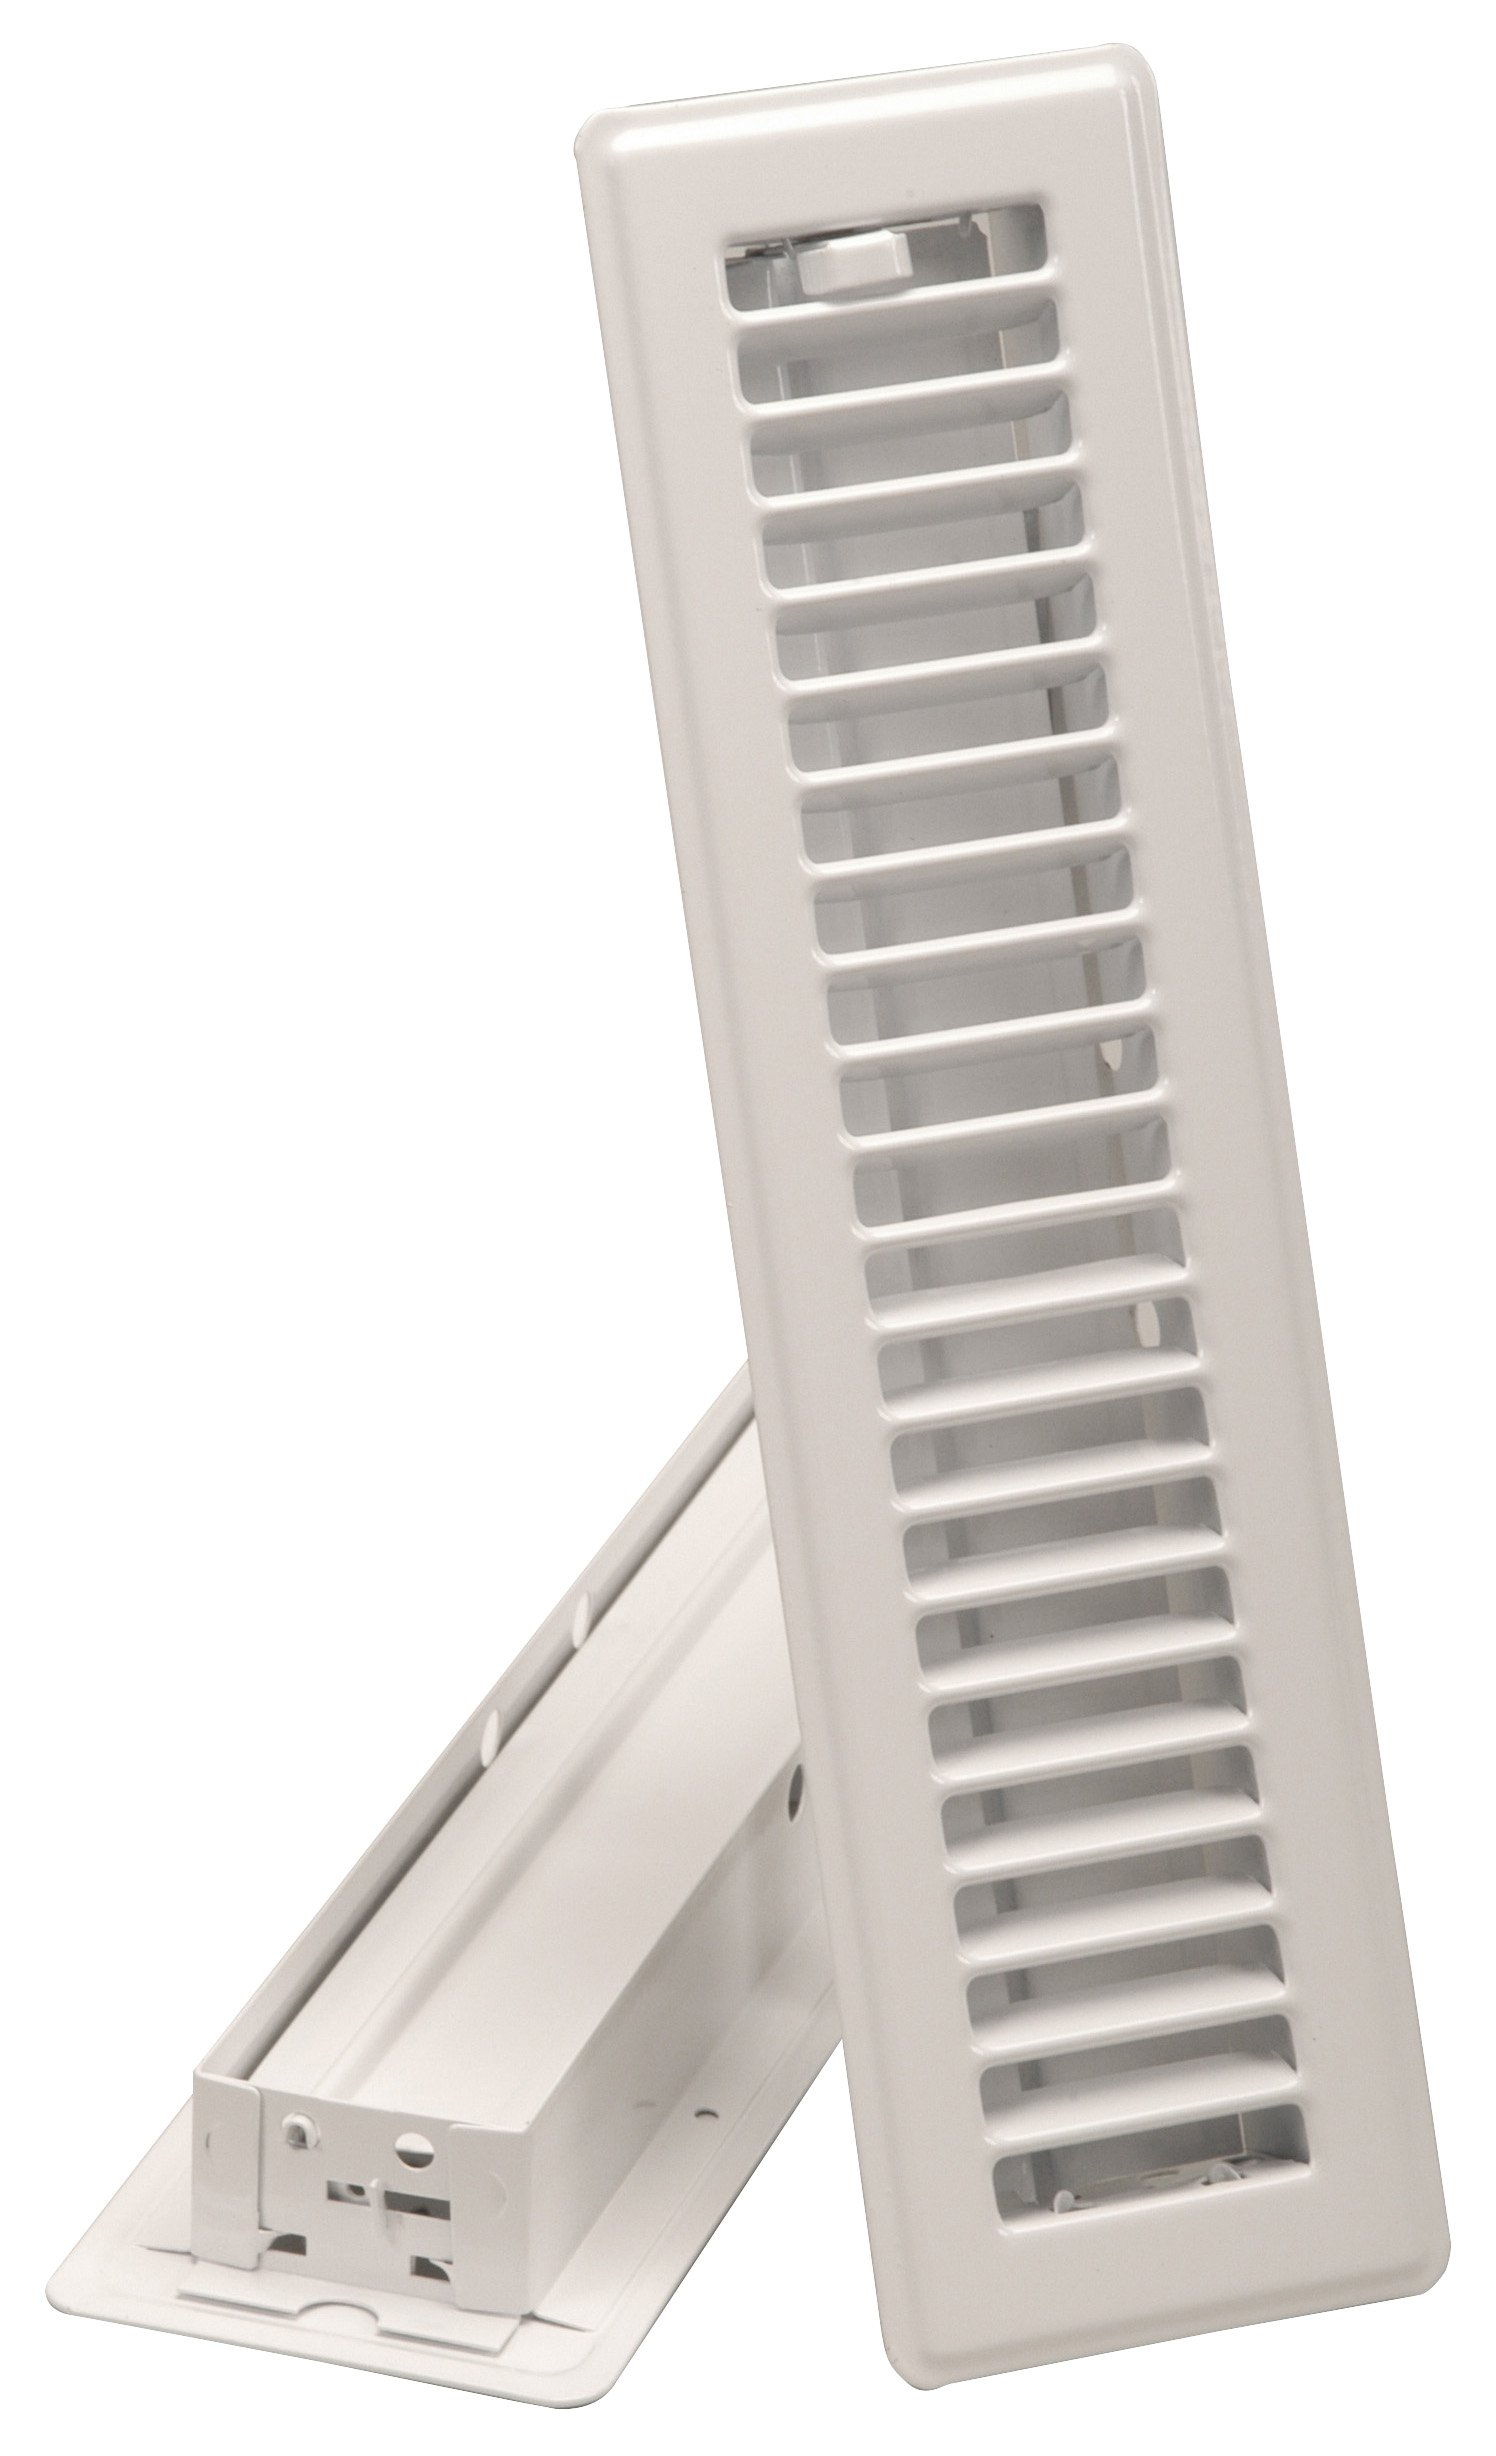 Imperial 2-1/4'' x 12'' Louvered Floor Register, White, RG0179 by Imperial